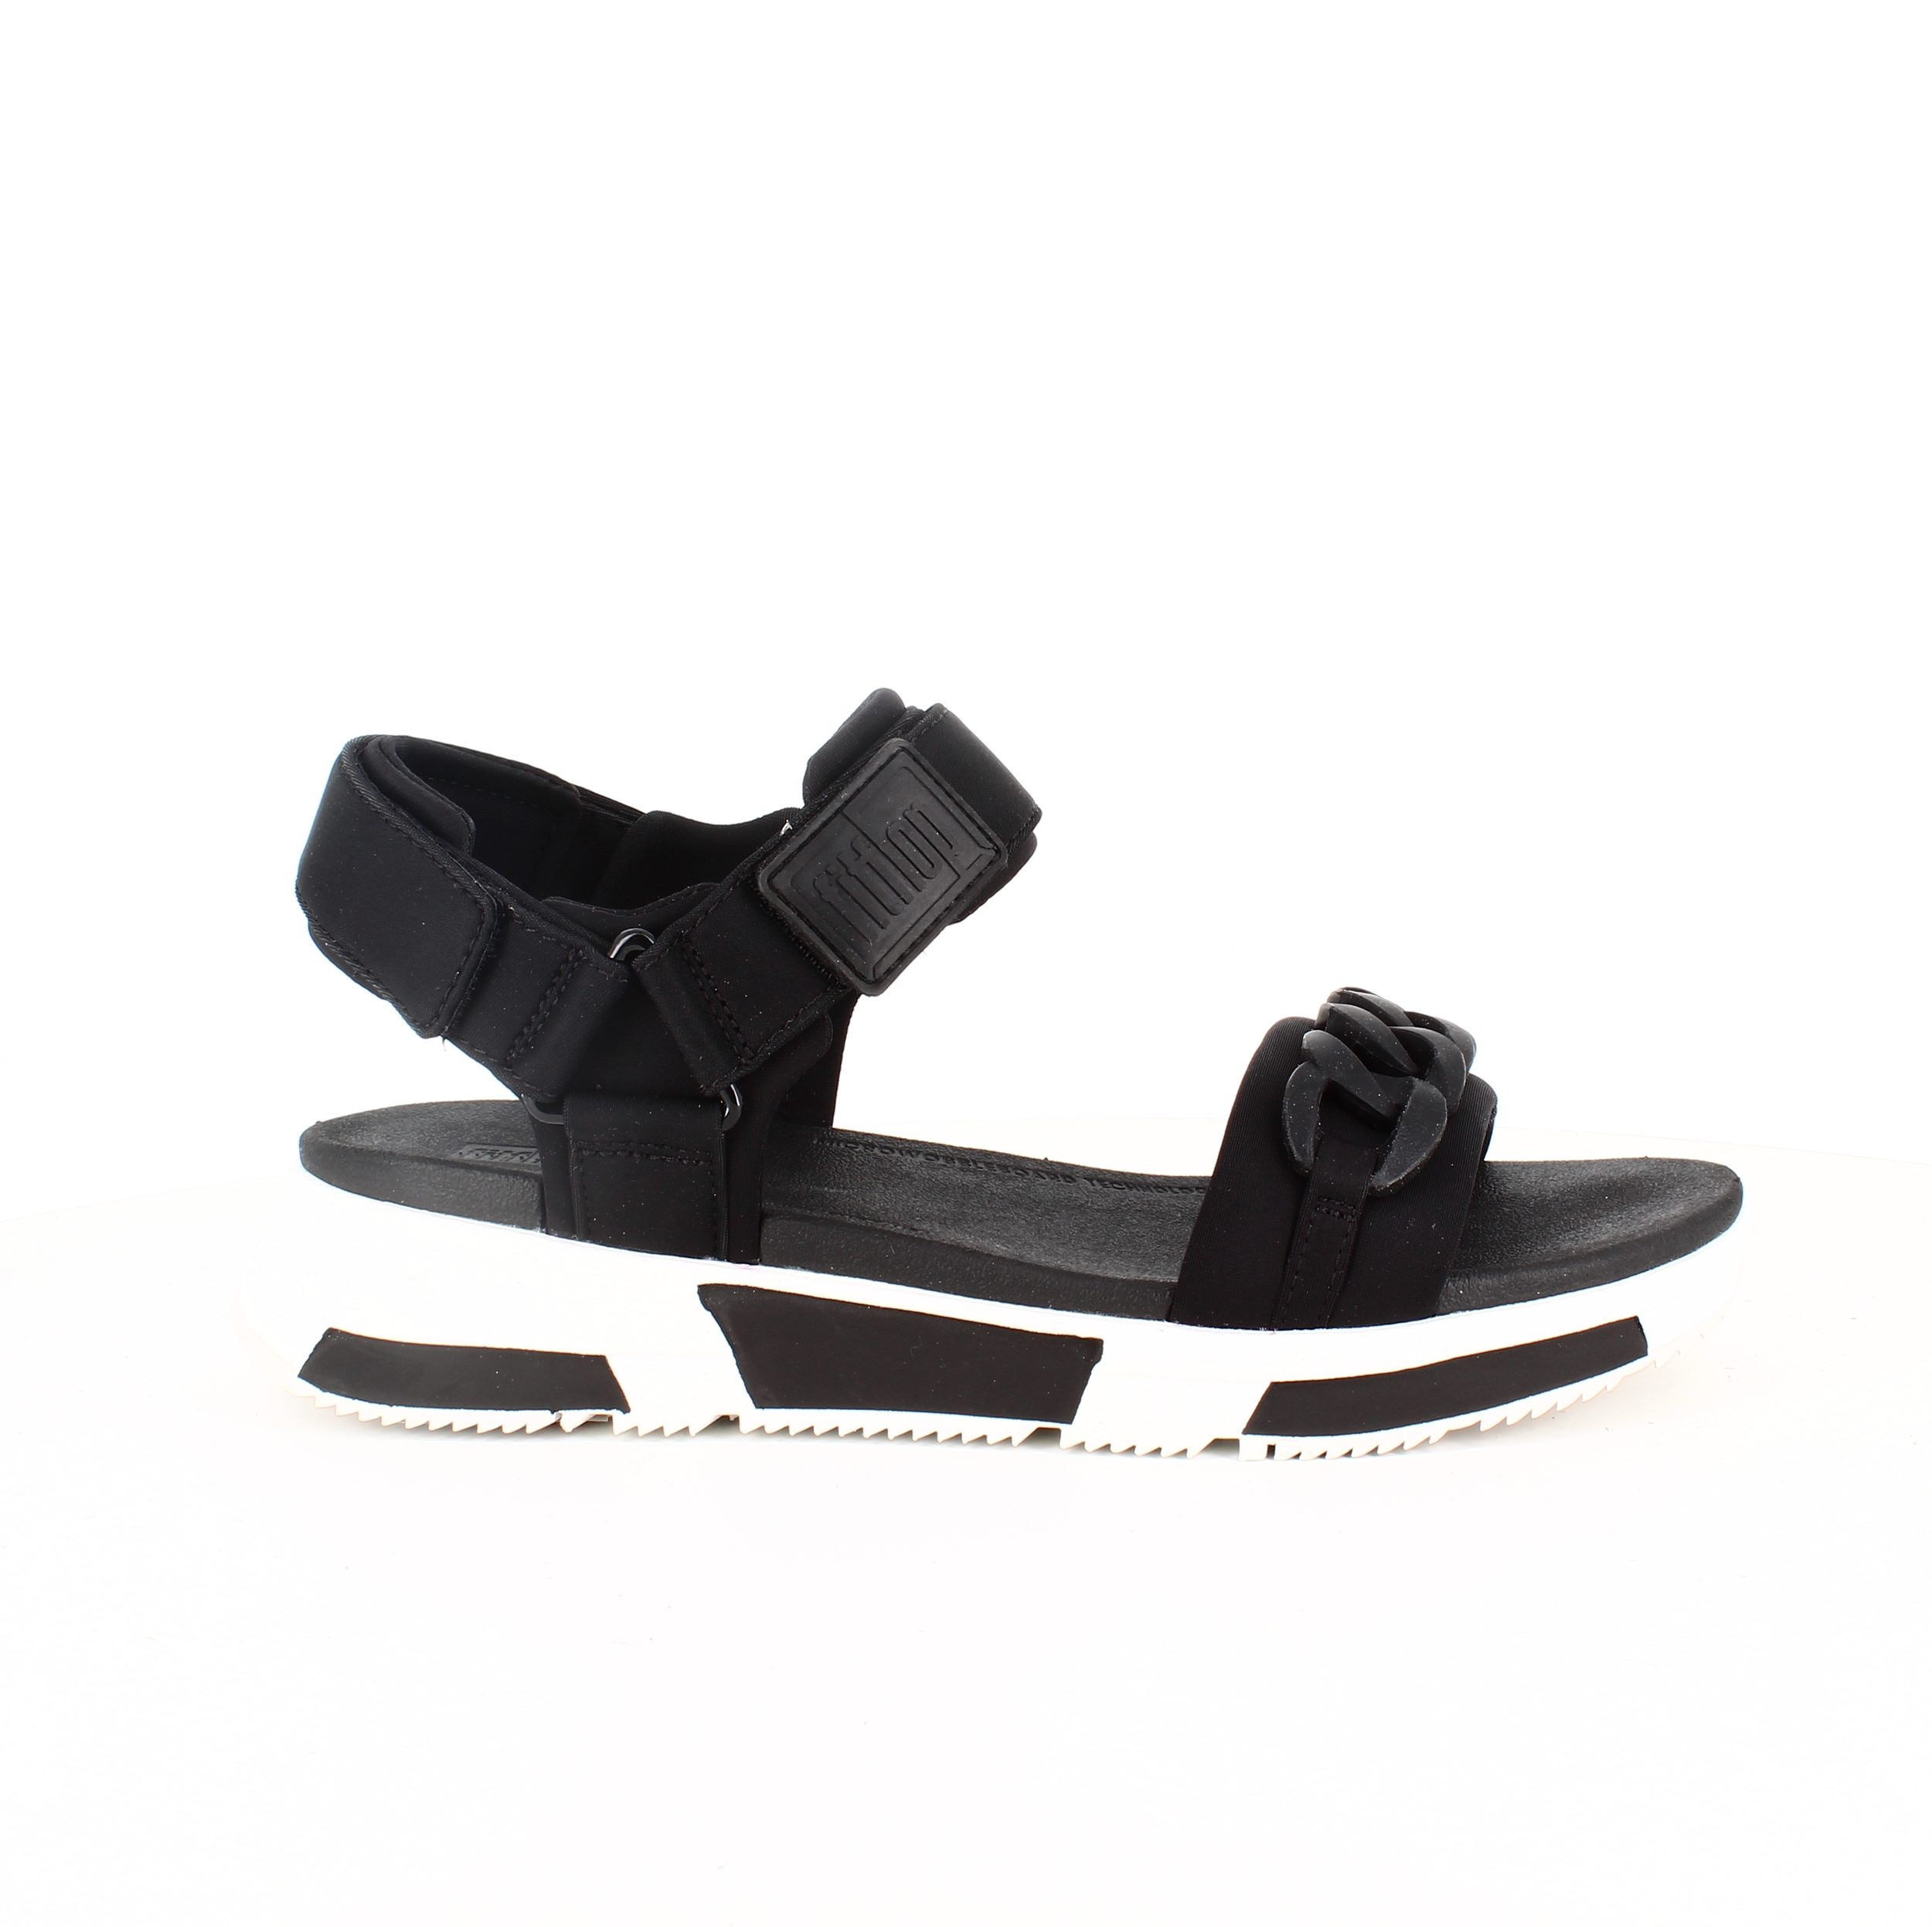 Image of   Heda Back strap sandal fra Fit flop - 40